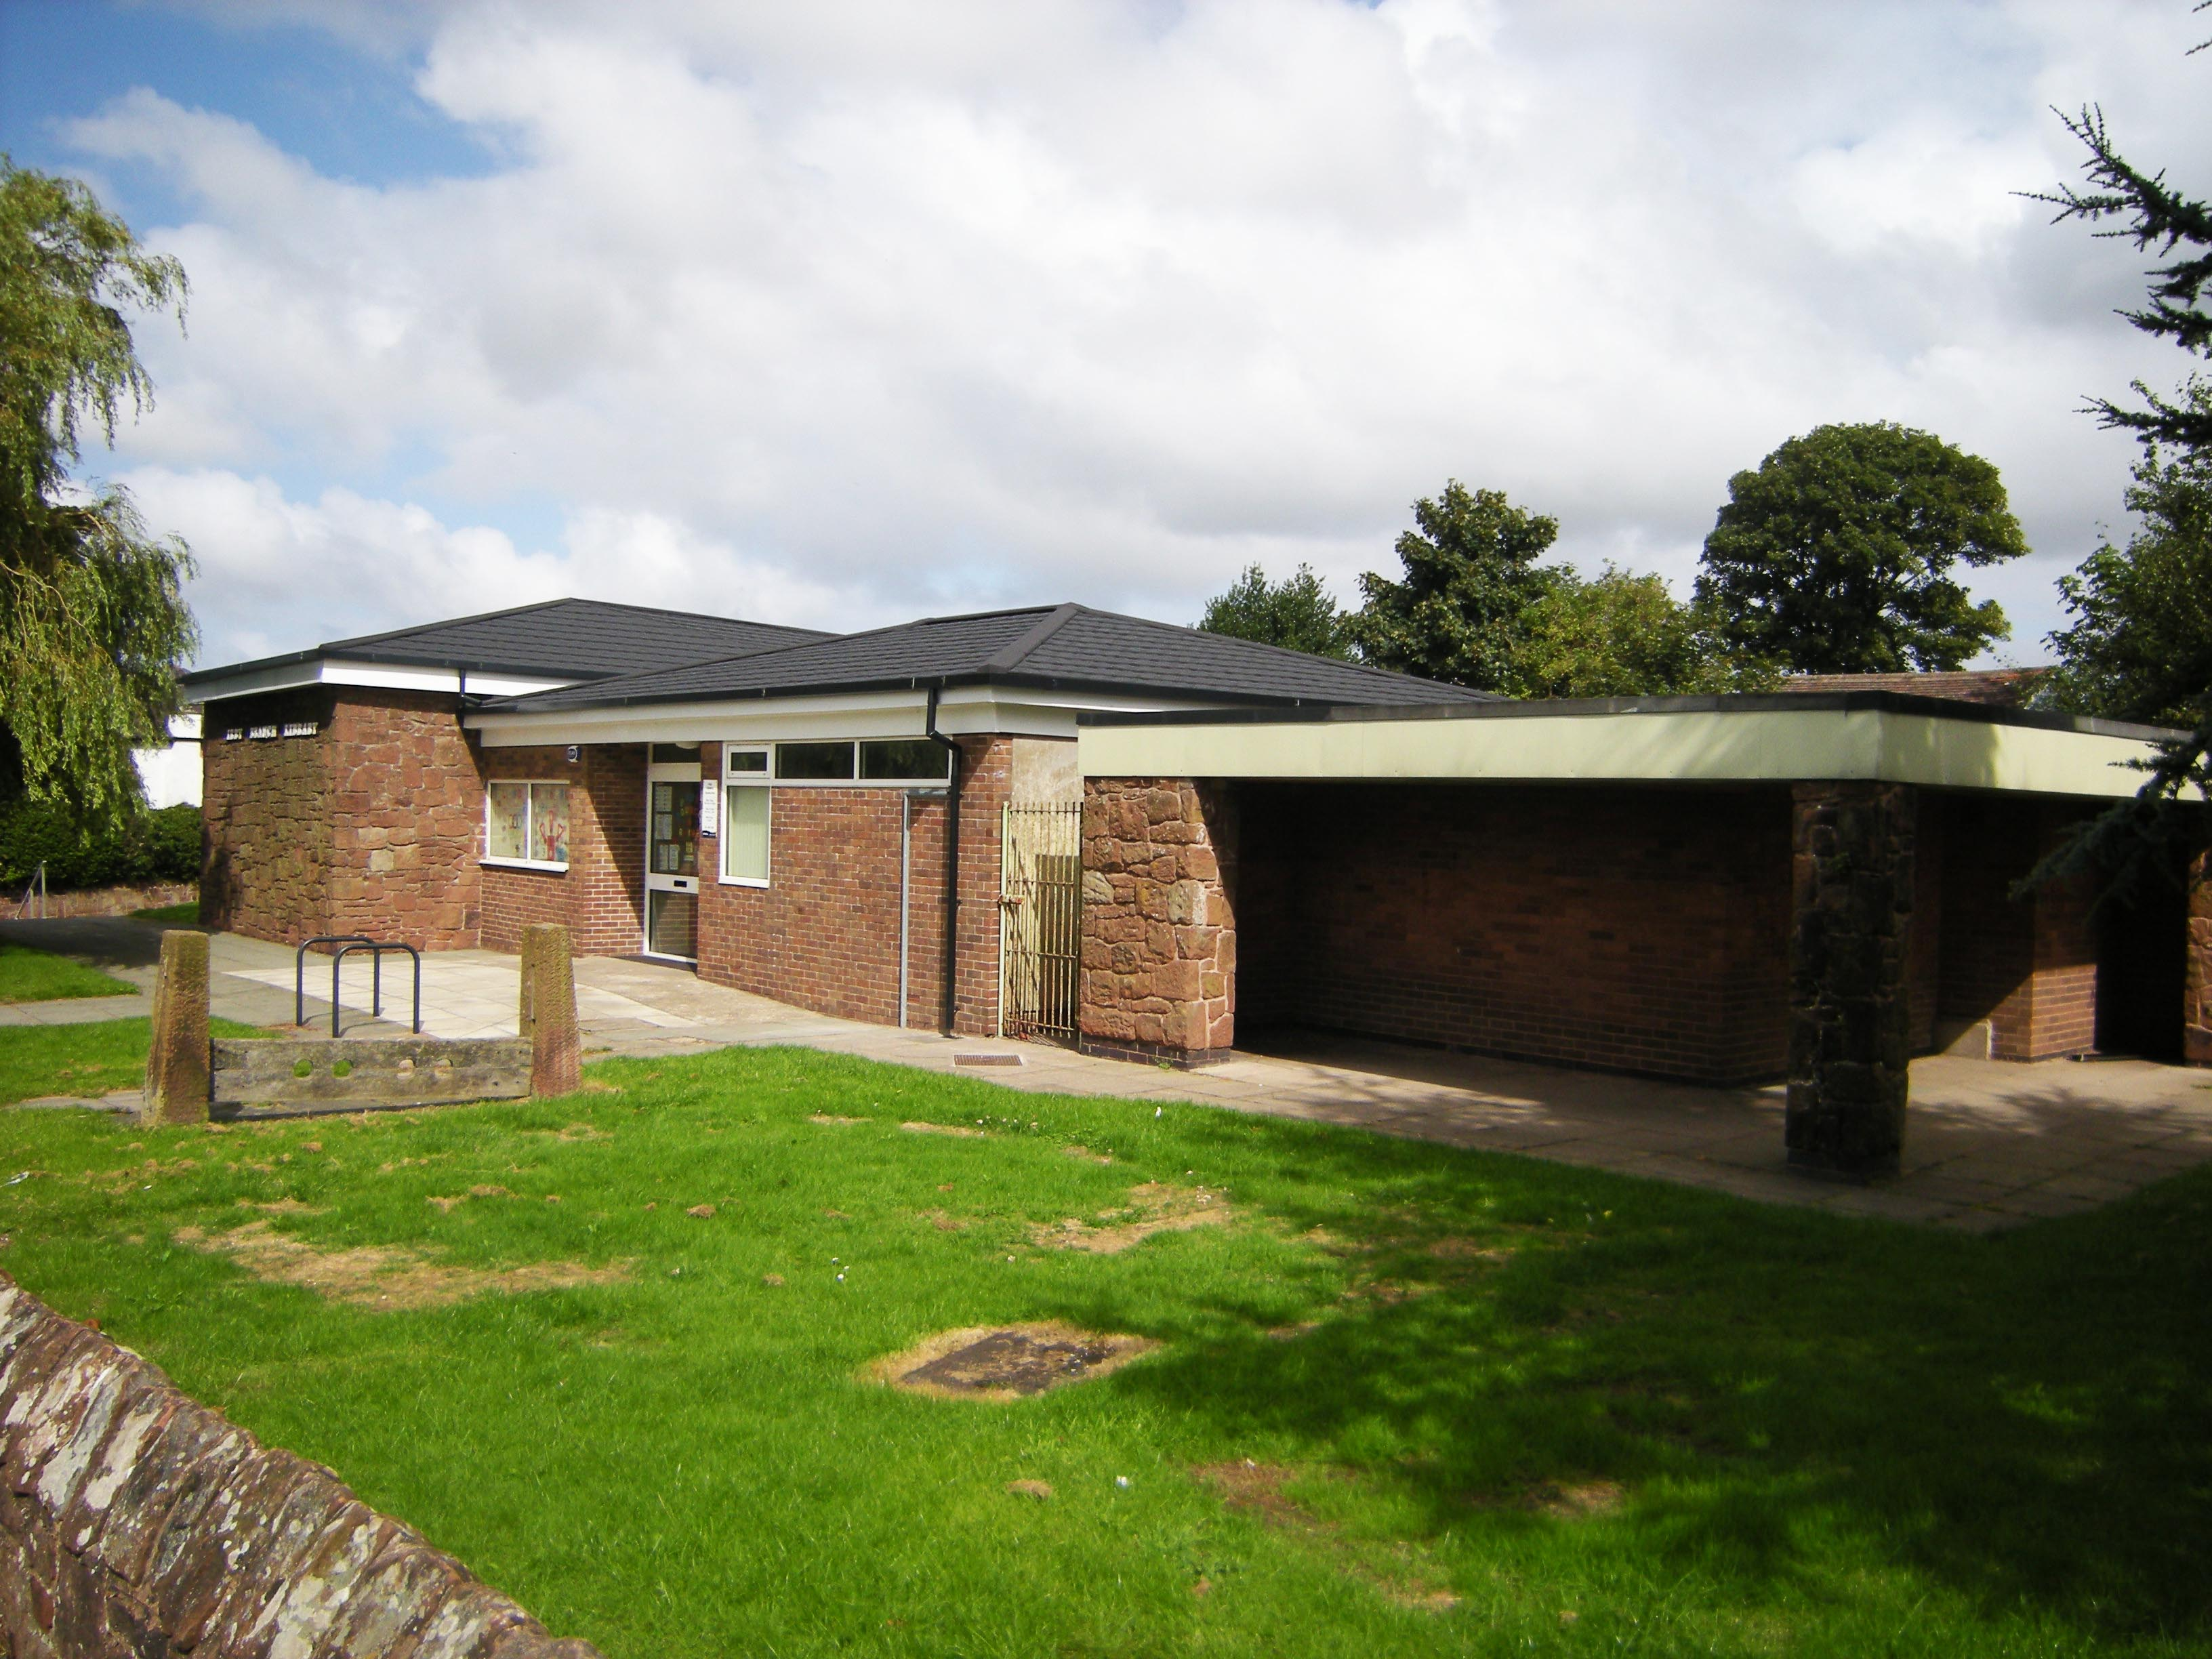 Local Authority Library Refurbishment Irby Metrotile Lightweight Roofing in Vixen Charcoal